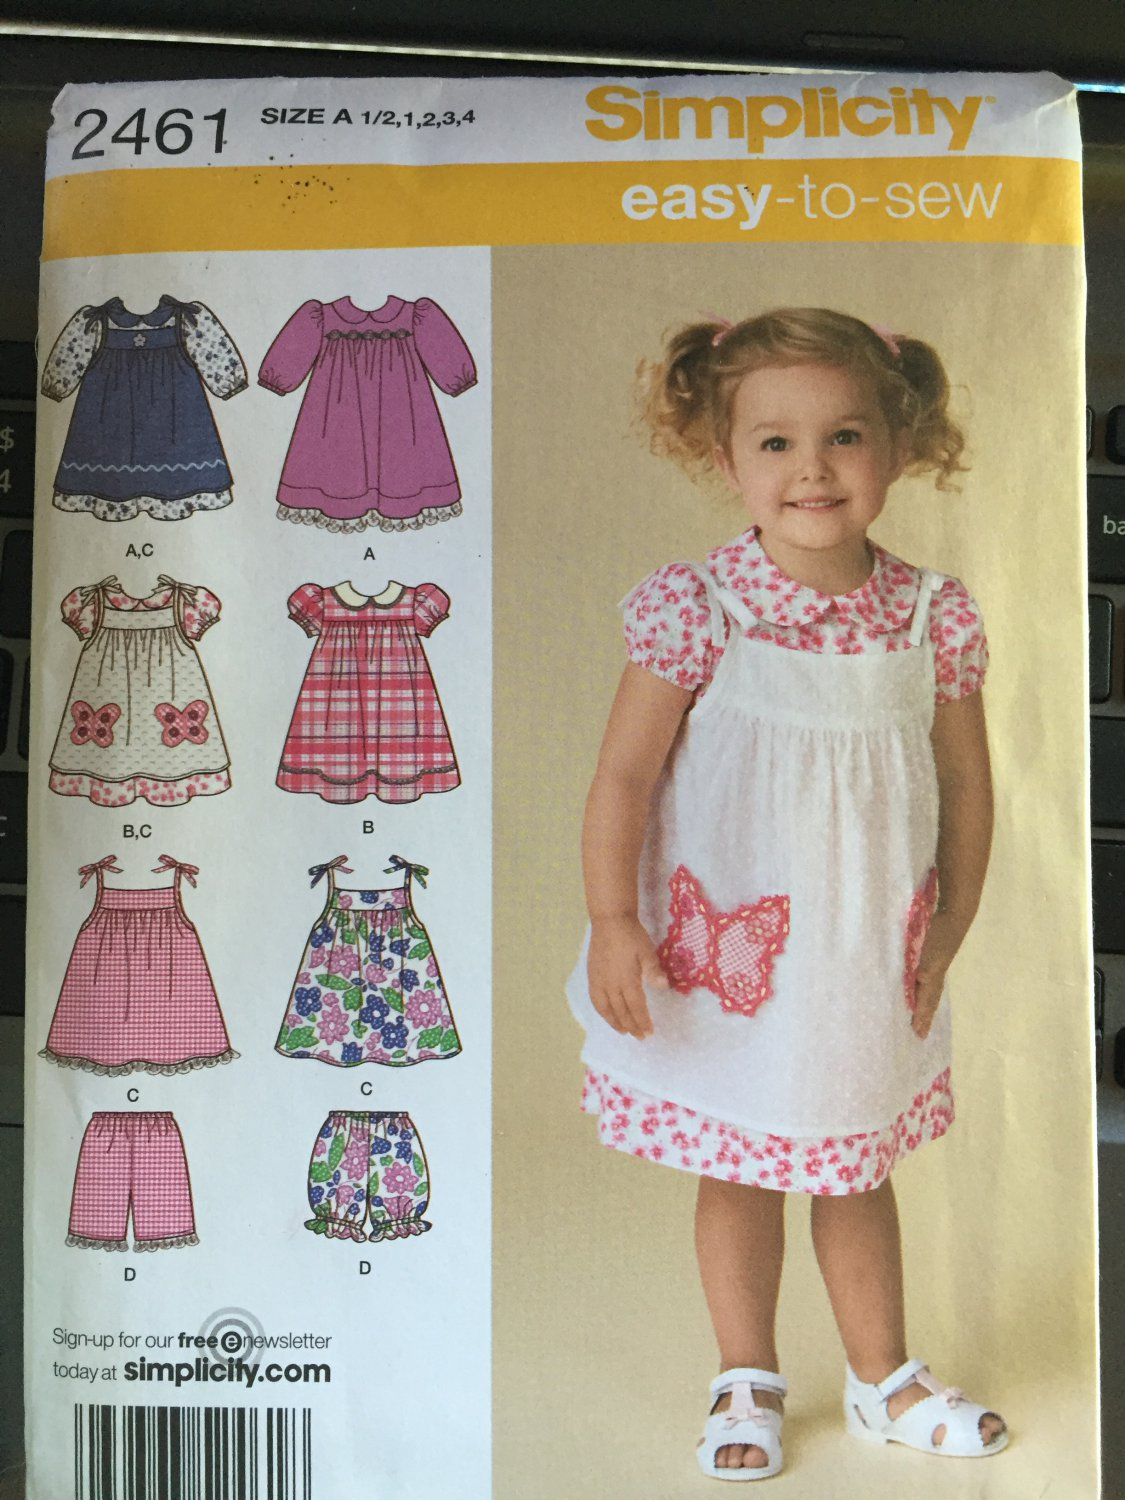 Simplicity Sewing Pattern 2461 Toddlers� Dress, Pinafore and Shorts Sizes 1/2 to 4